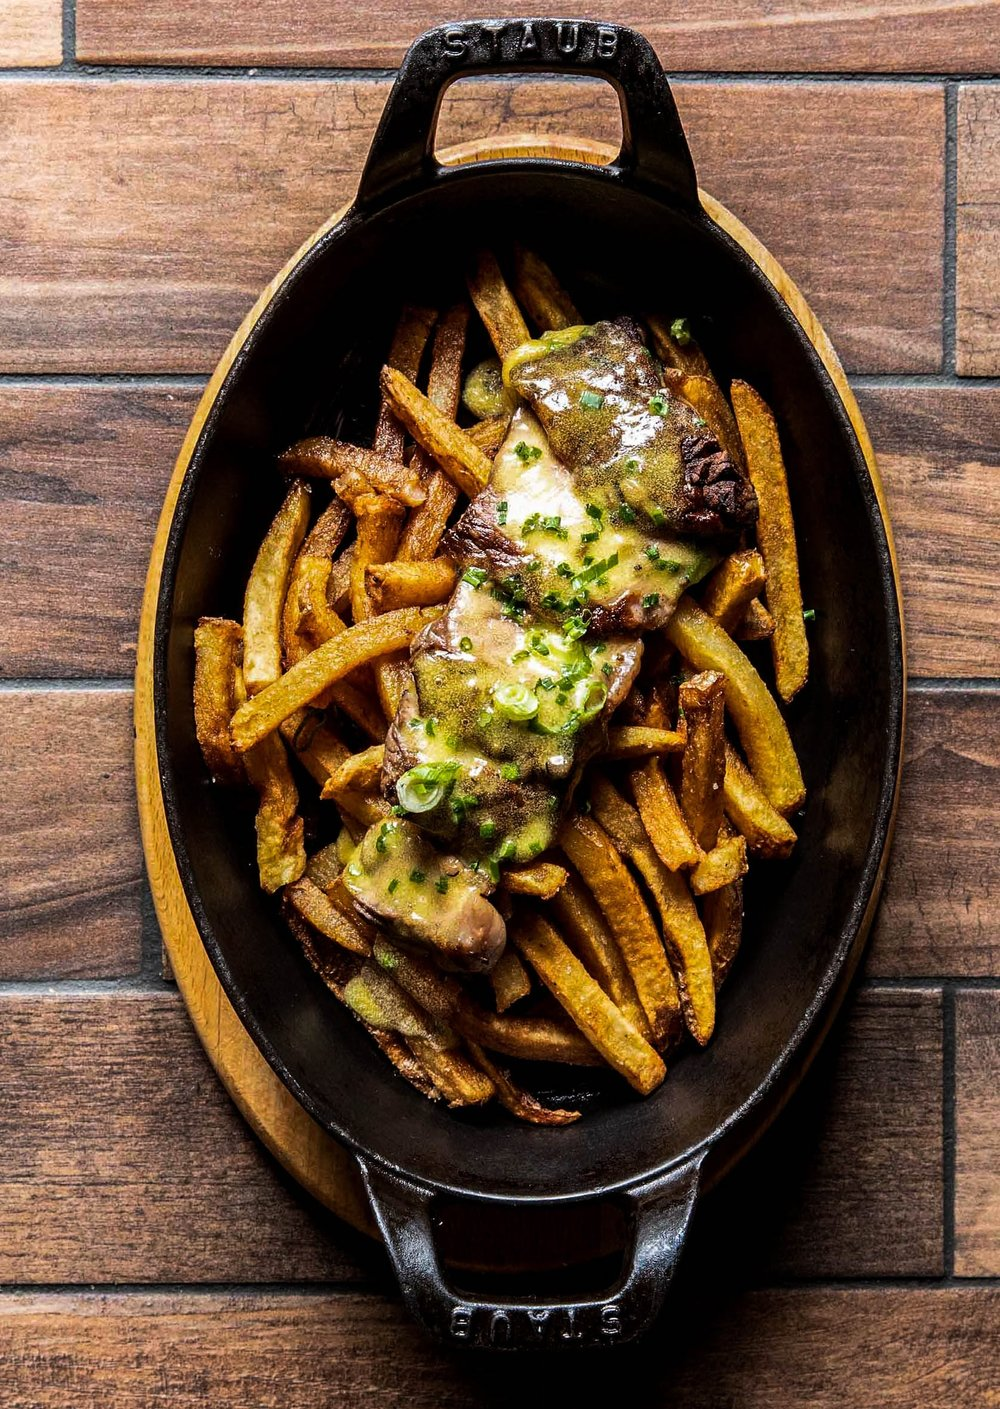 540455_Steak_Frites_SL-1 (dragged).jpg